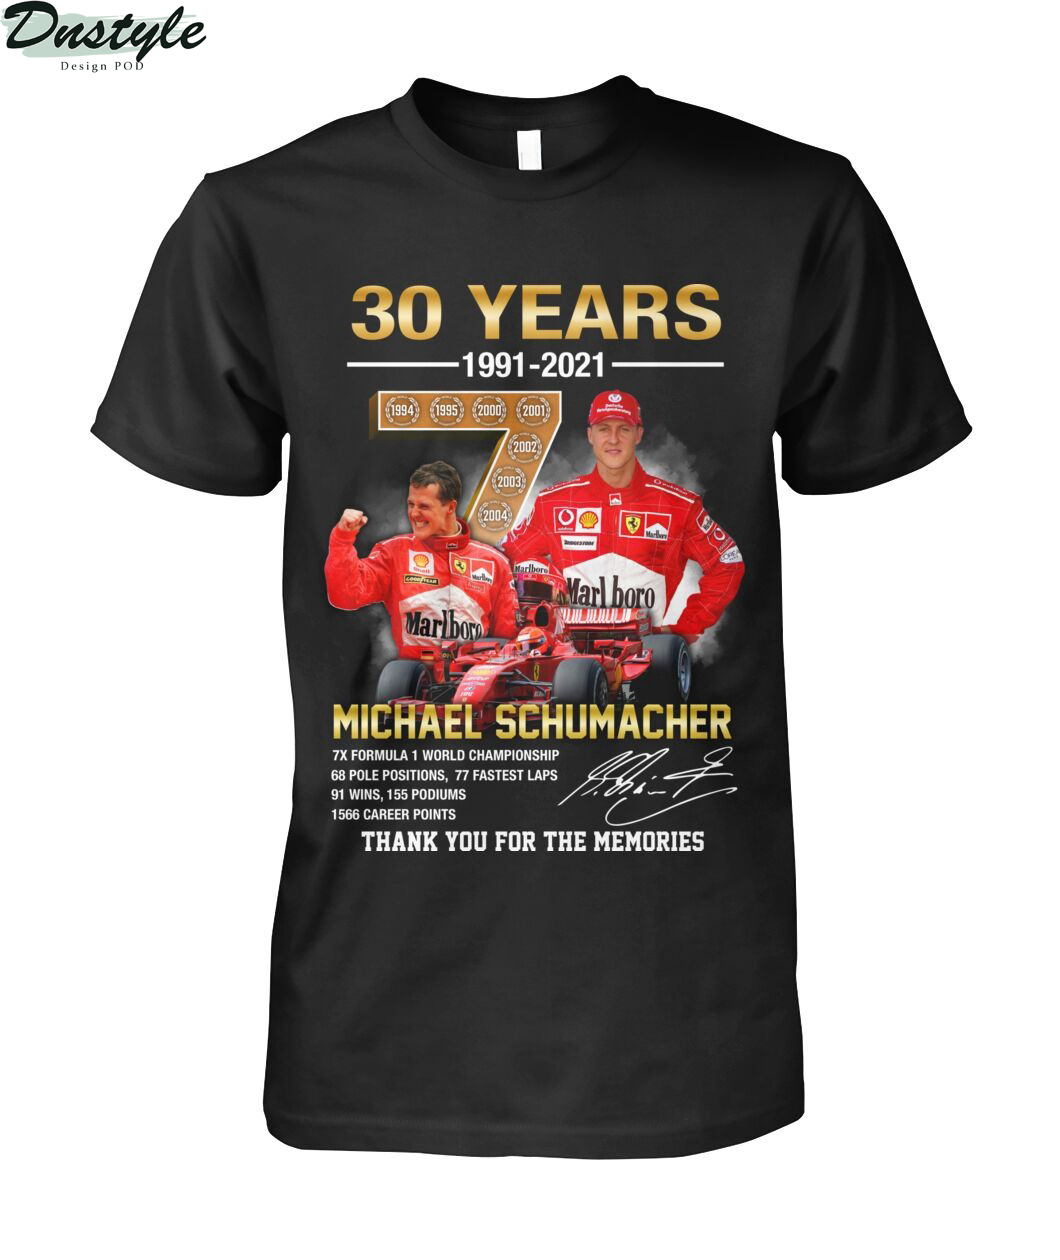 Michael schumacher 30 years thank you for the memories shirt